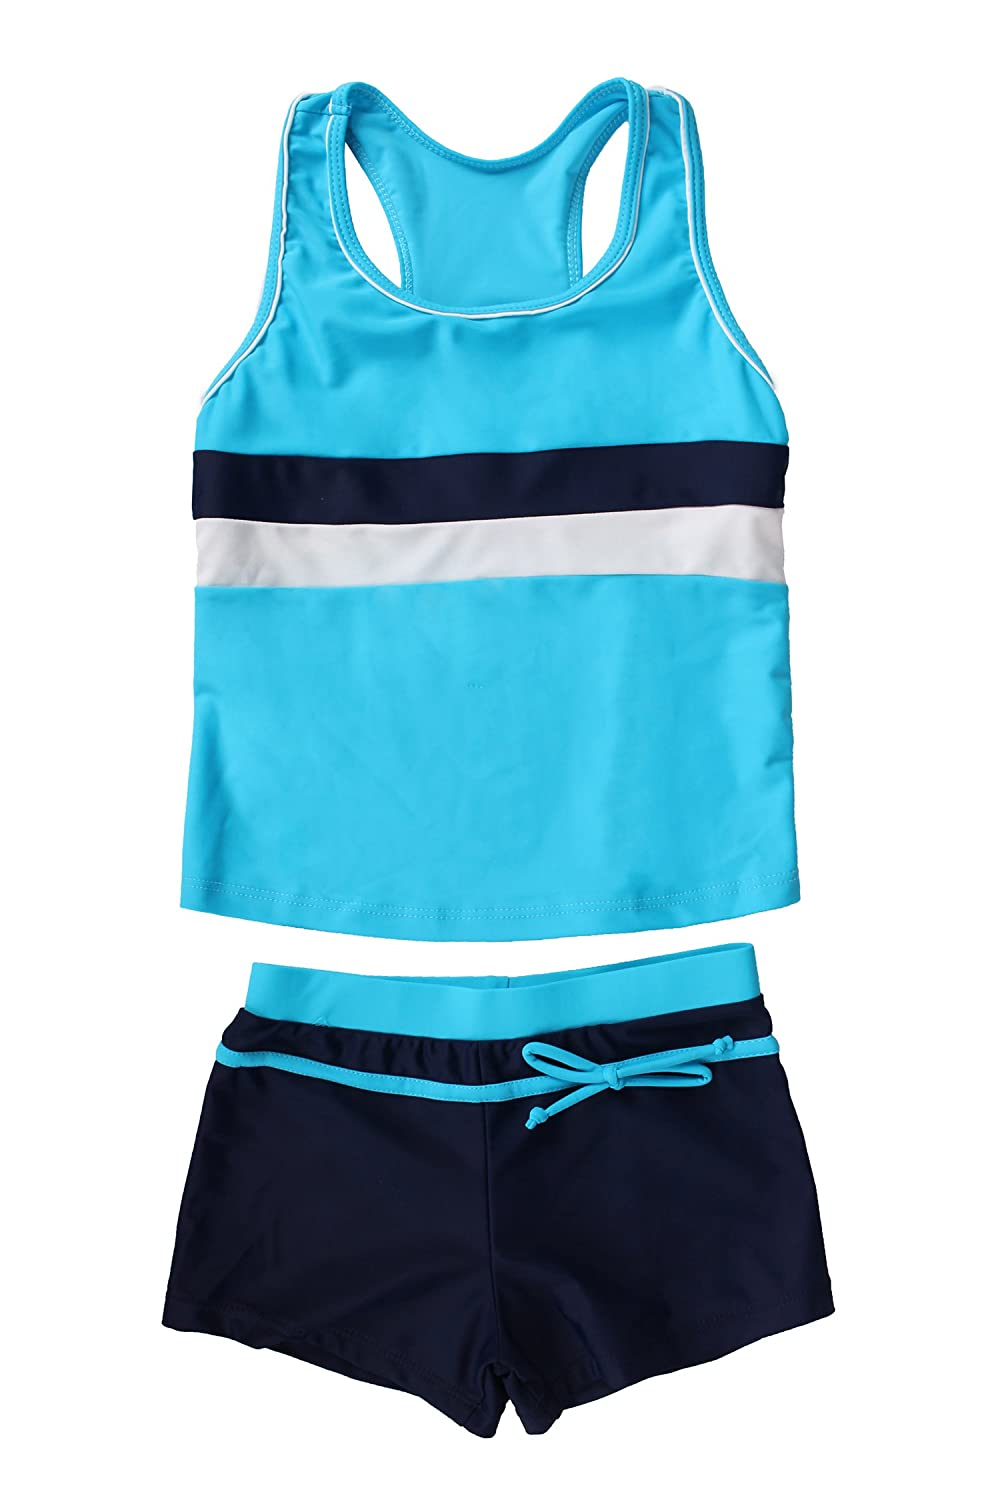 JerrisApparel Little Girls' Summer Two Piece Boyshort Tankini Kids Swimsuit